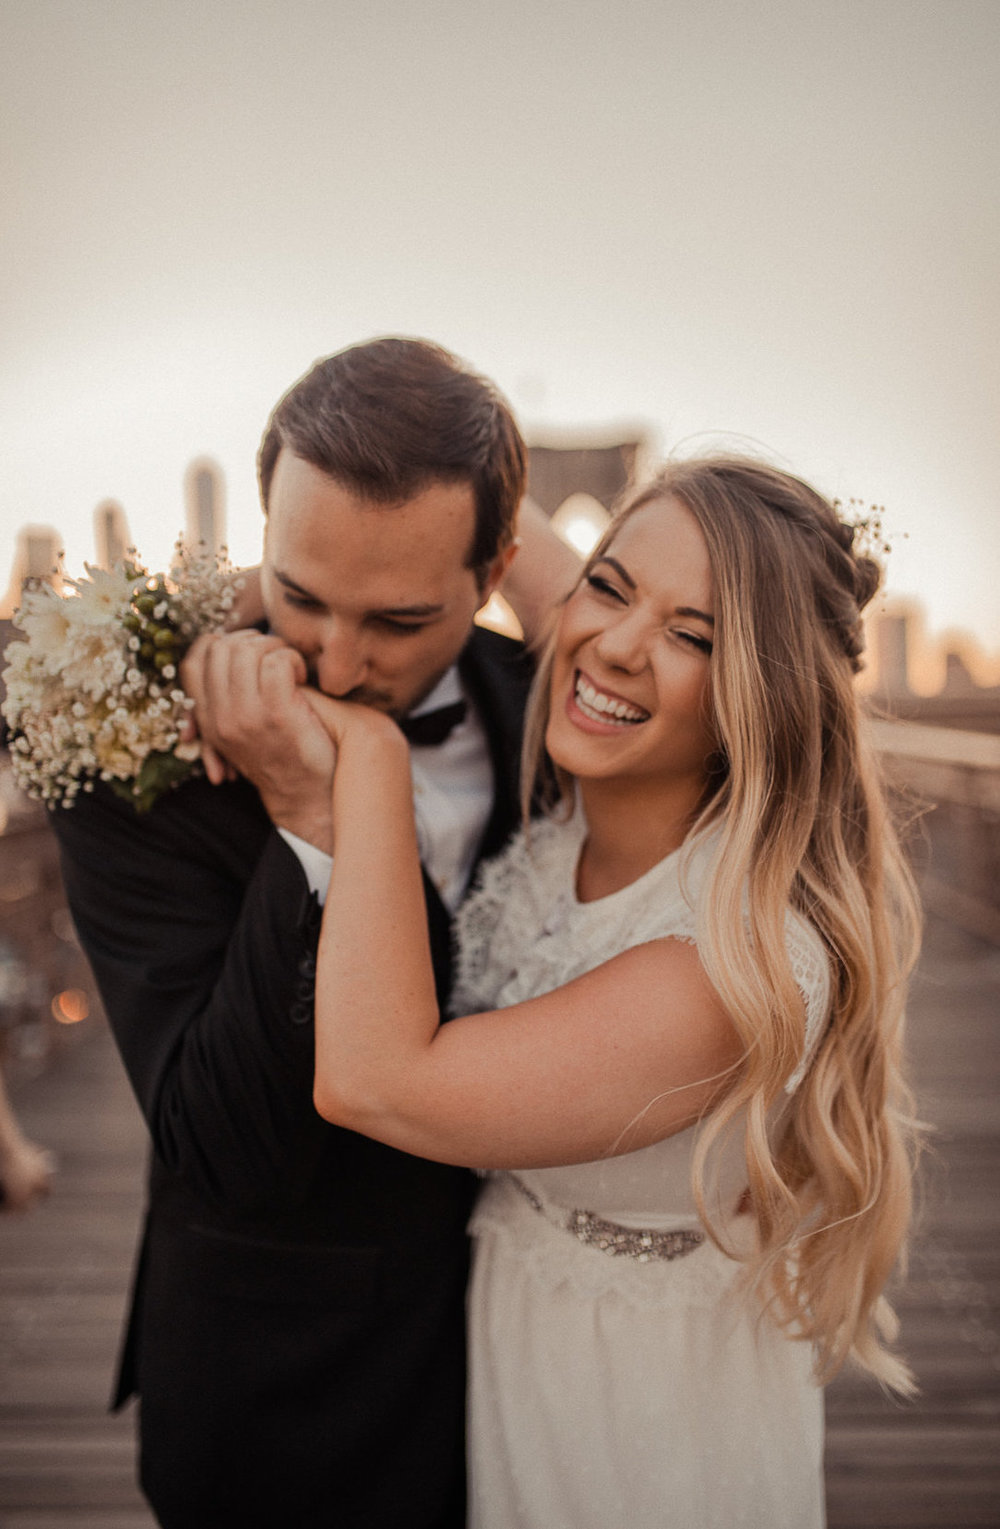 """""""she made us feel so comfortable. her feedback during the shoot— how to pose— was a really amazing experience. i wish she photographed our initial wedding!"""" - -sarah x matthais, brooklyn vow renewal"""